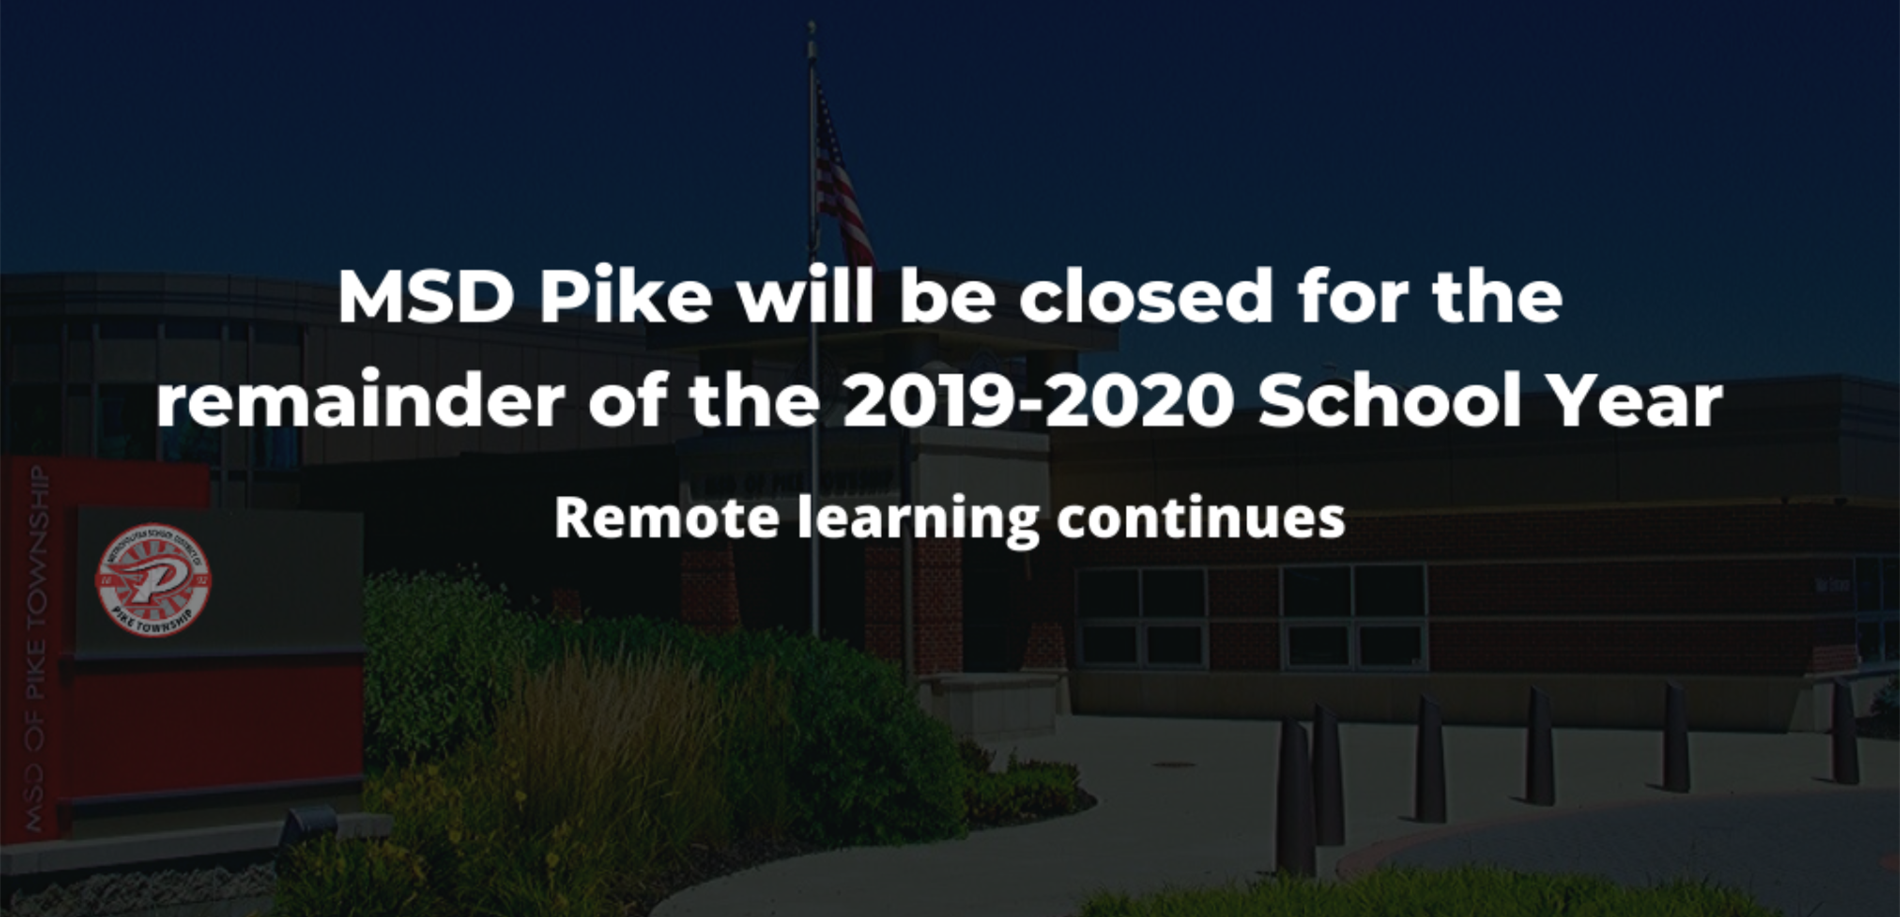 MSD Pike Closed for 2019-2020 school year